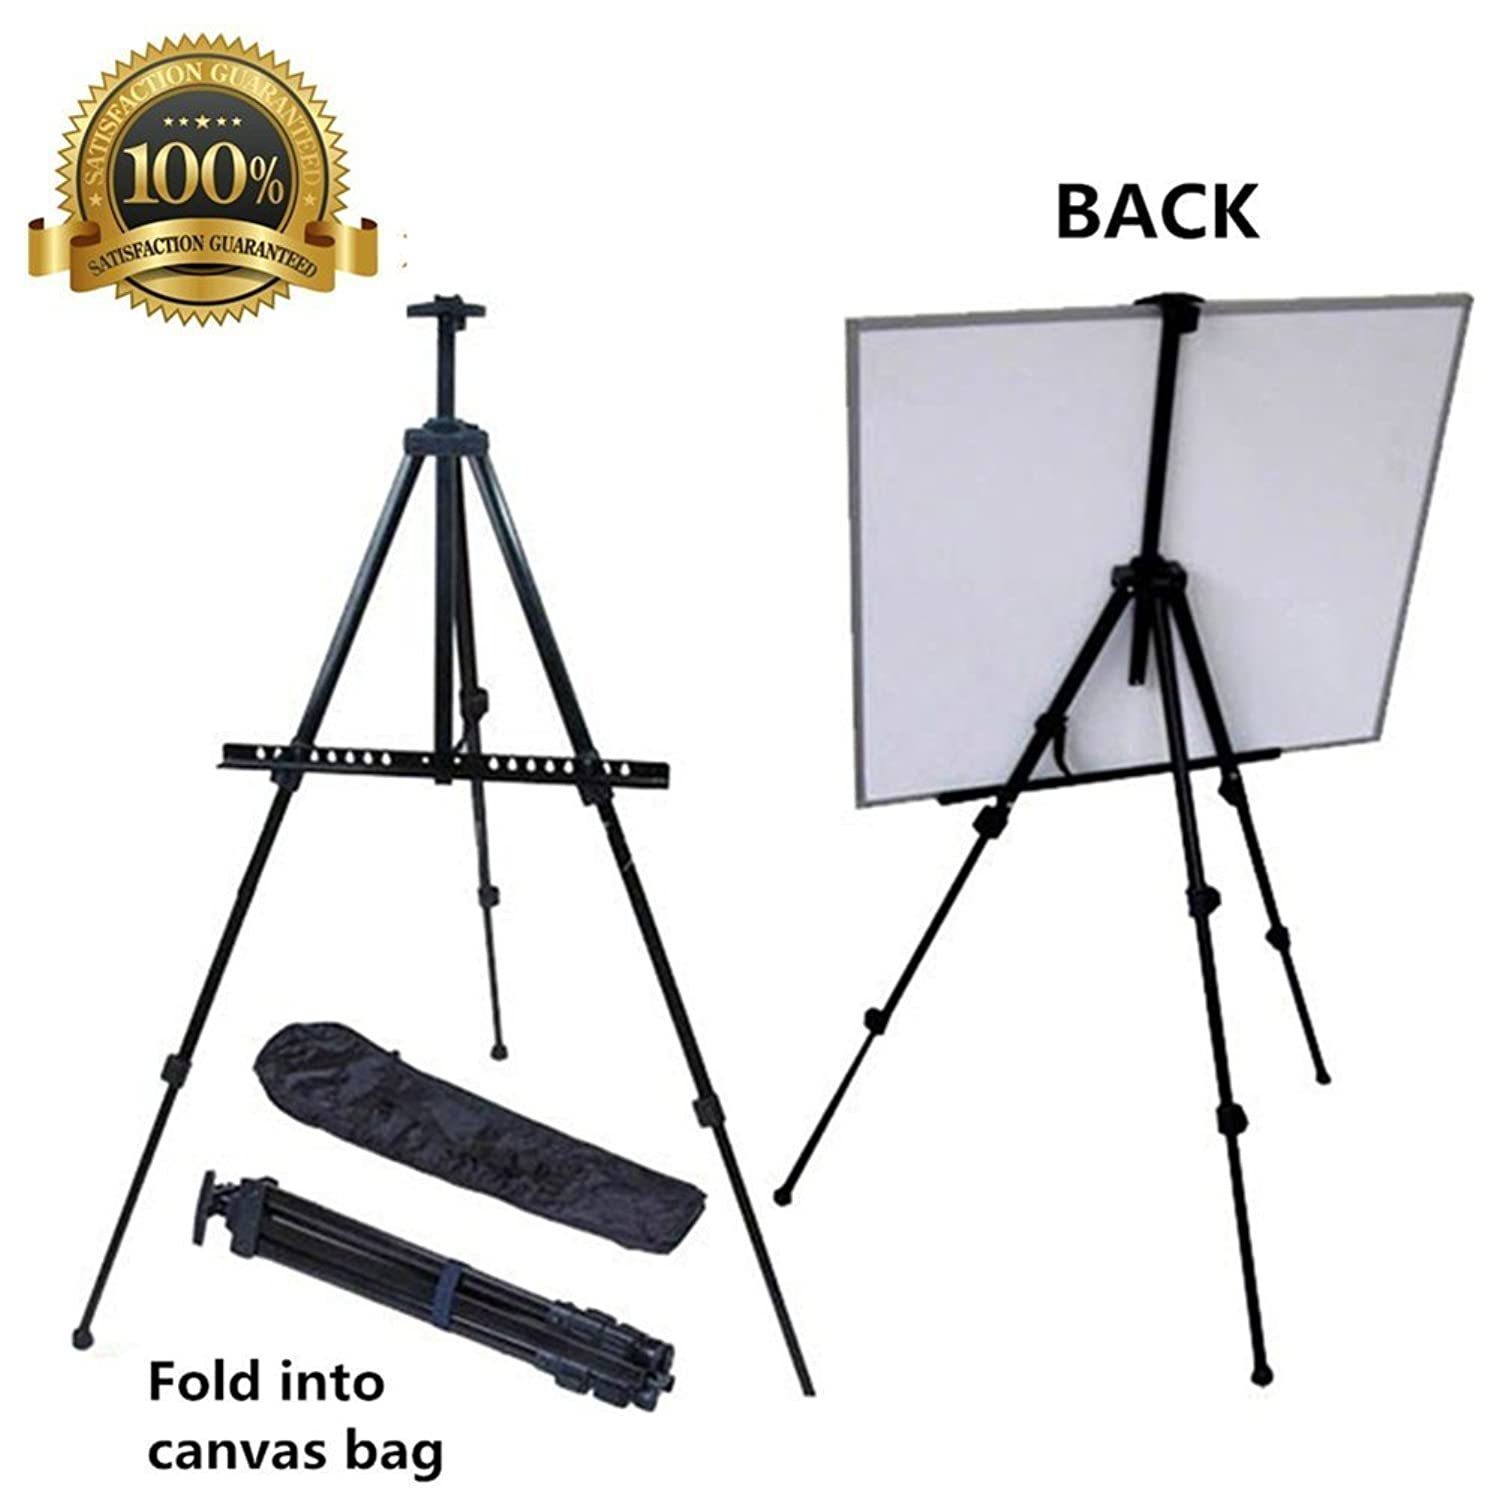 Easel for Painting, Mukin Field Easel Stand for Posters - Perfect Painting,Office, Display Easel - Adjustable Height Lightweight Folding Telescoping Tripod Easels for Table or Floor - 63 Inches Tall.